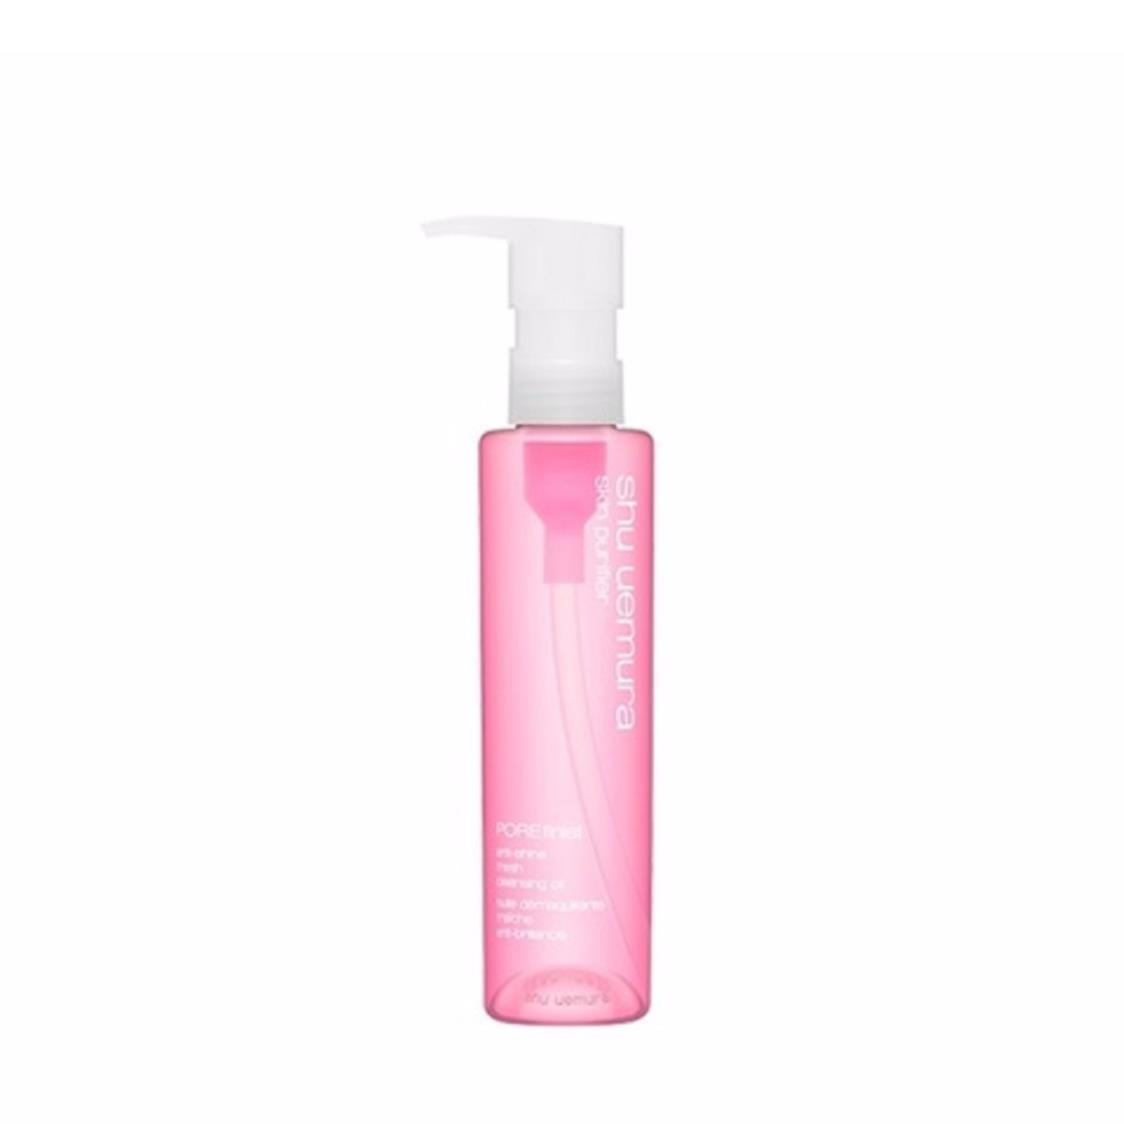 Porefinist Anti-Shine Fresh Cleansing Oil